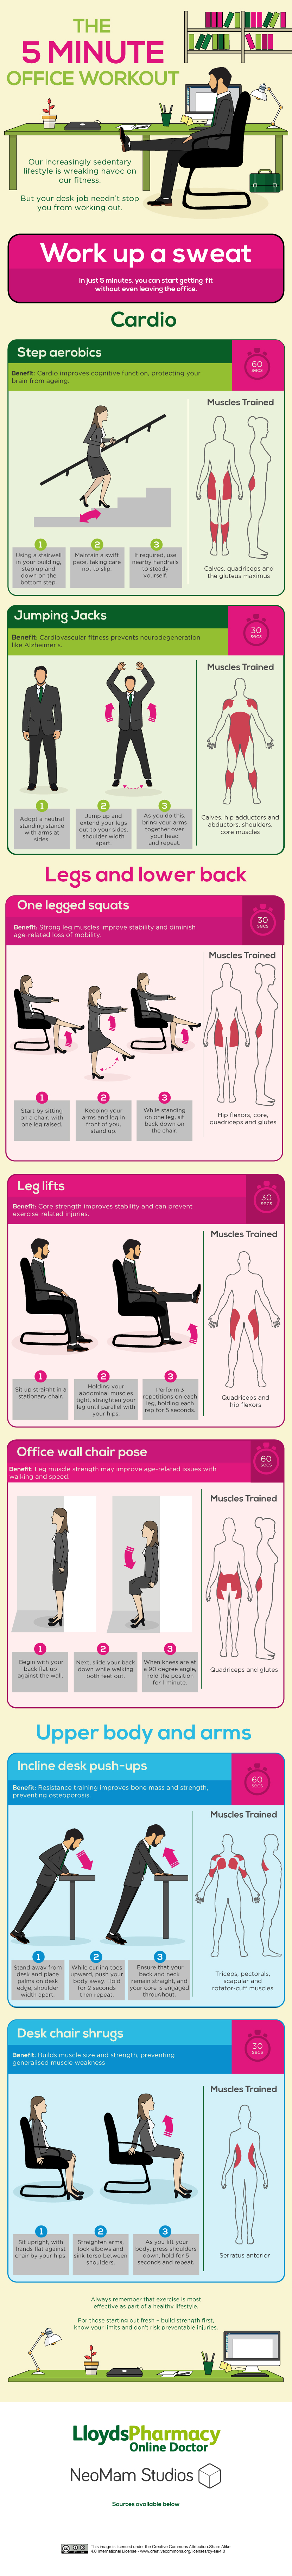 7 Exercises You Do Can While At Work - Infographic